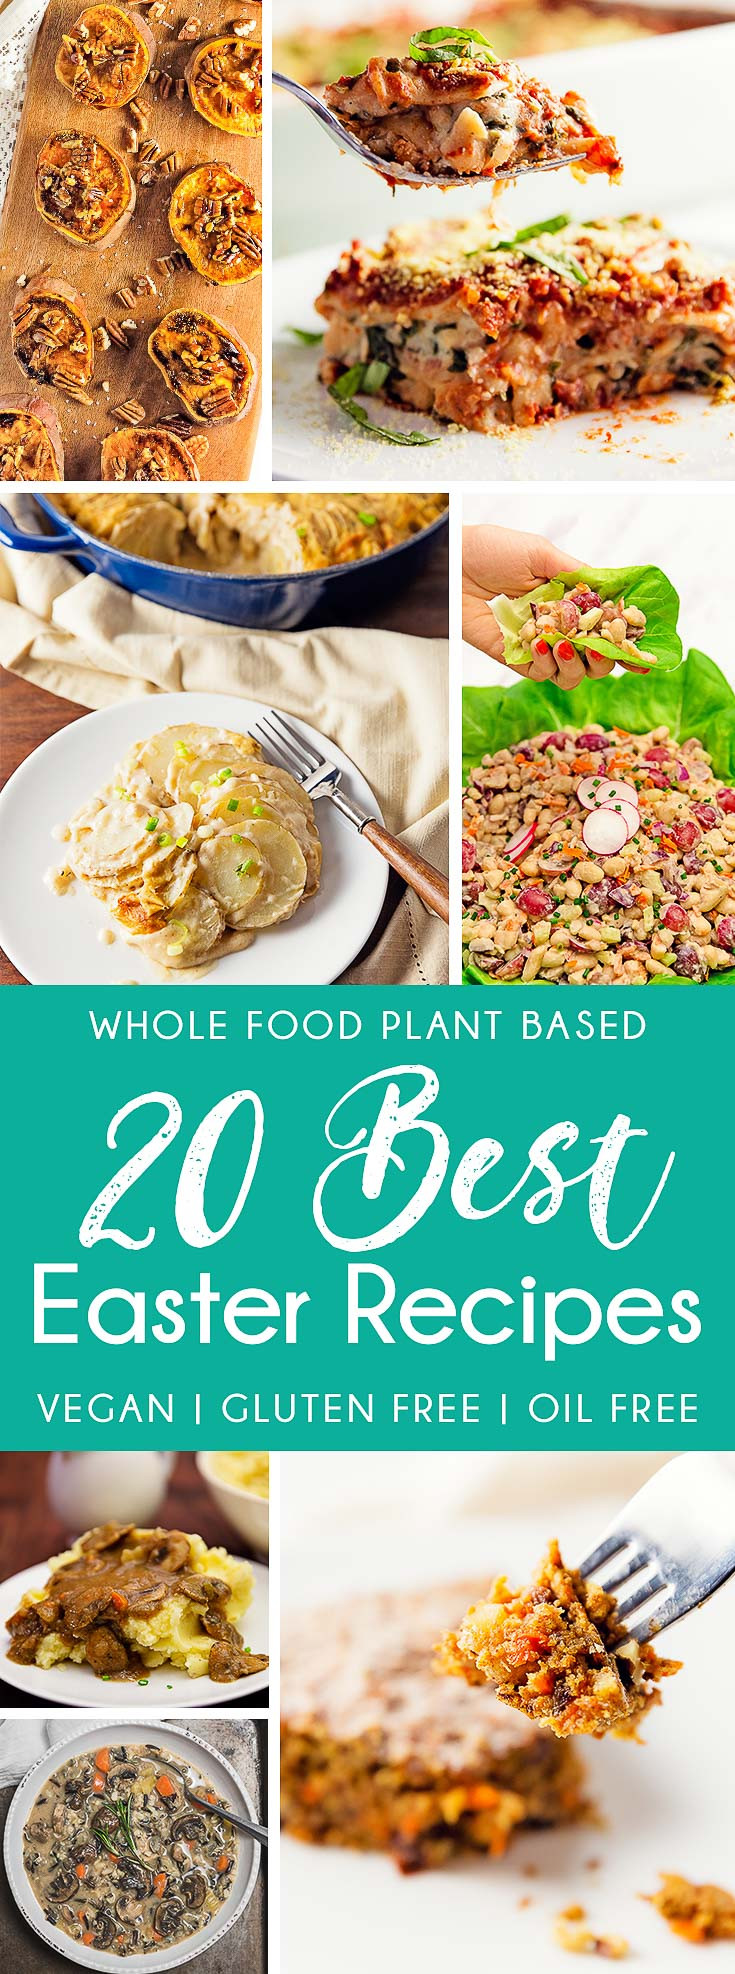 Whole Food Easter Dinner  20 Best Easter Recipes Monkey and Me Kitchen Adventures